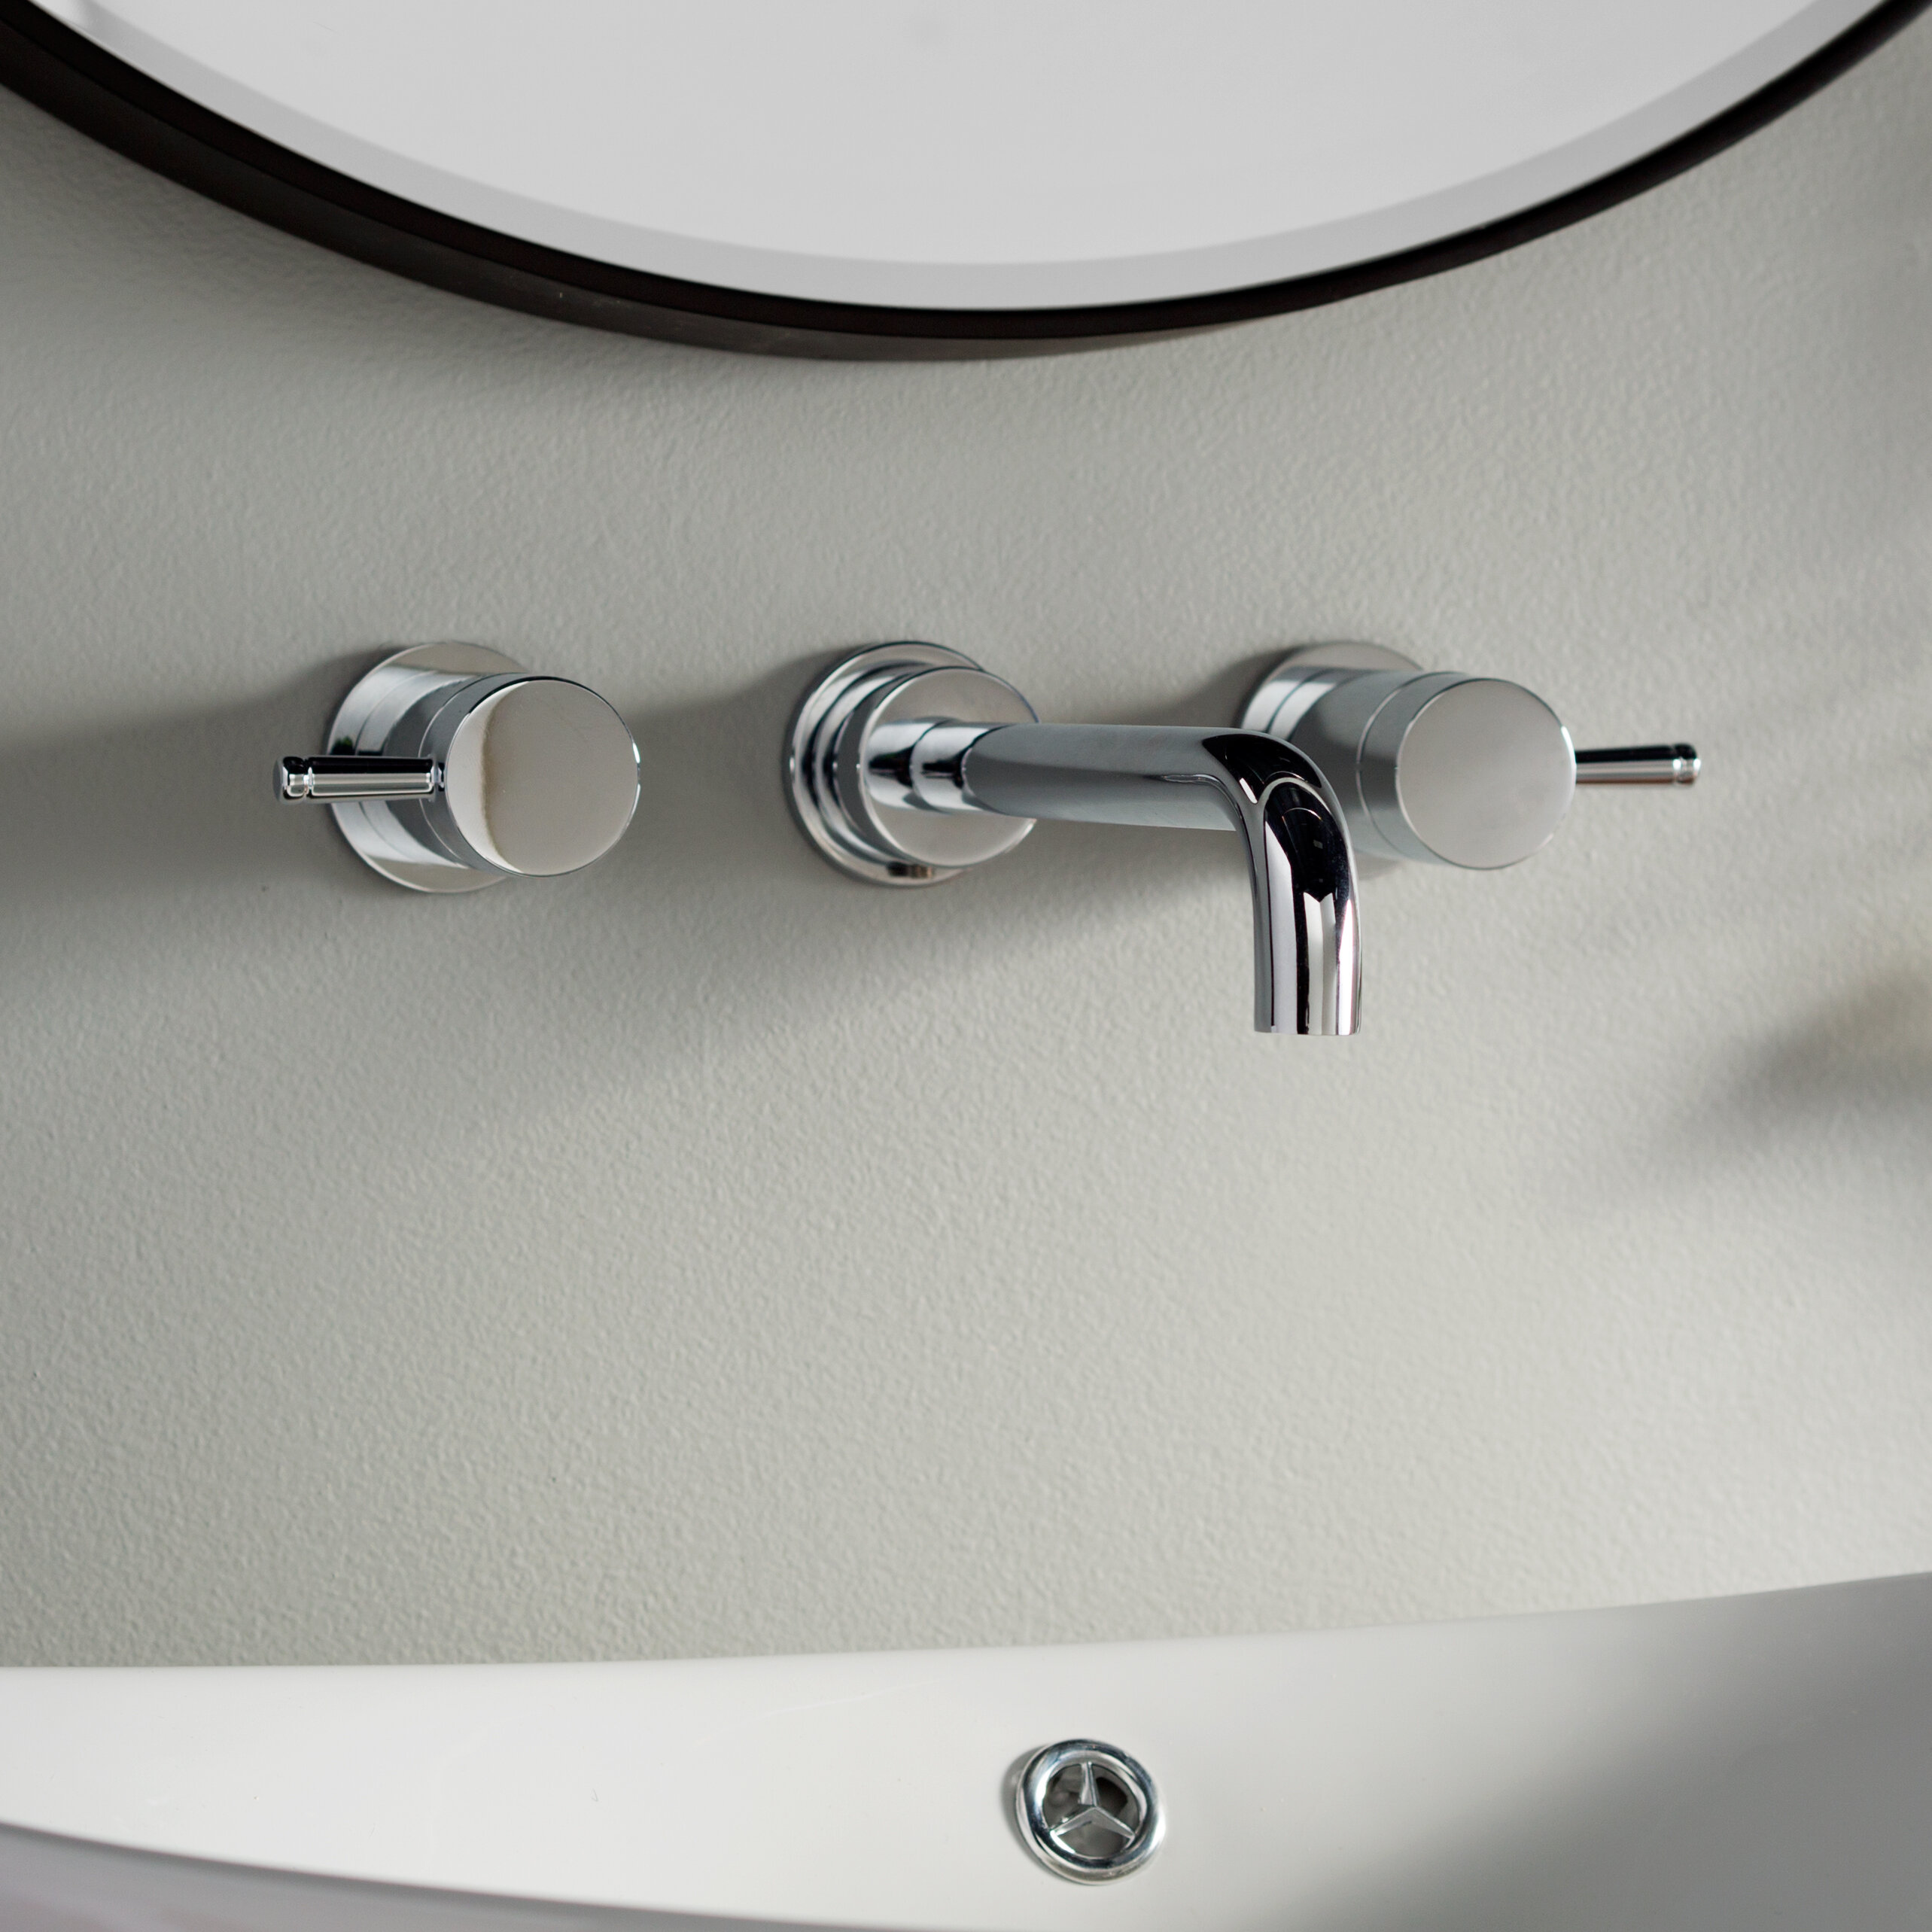 Exceptionnel American Standard Serin Wall Mounted Bathroom Faucet With Drain Assembly U0026  Reviews | Wayfair